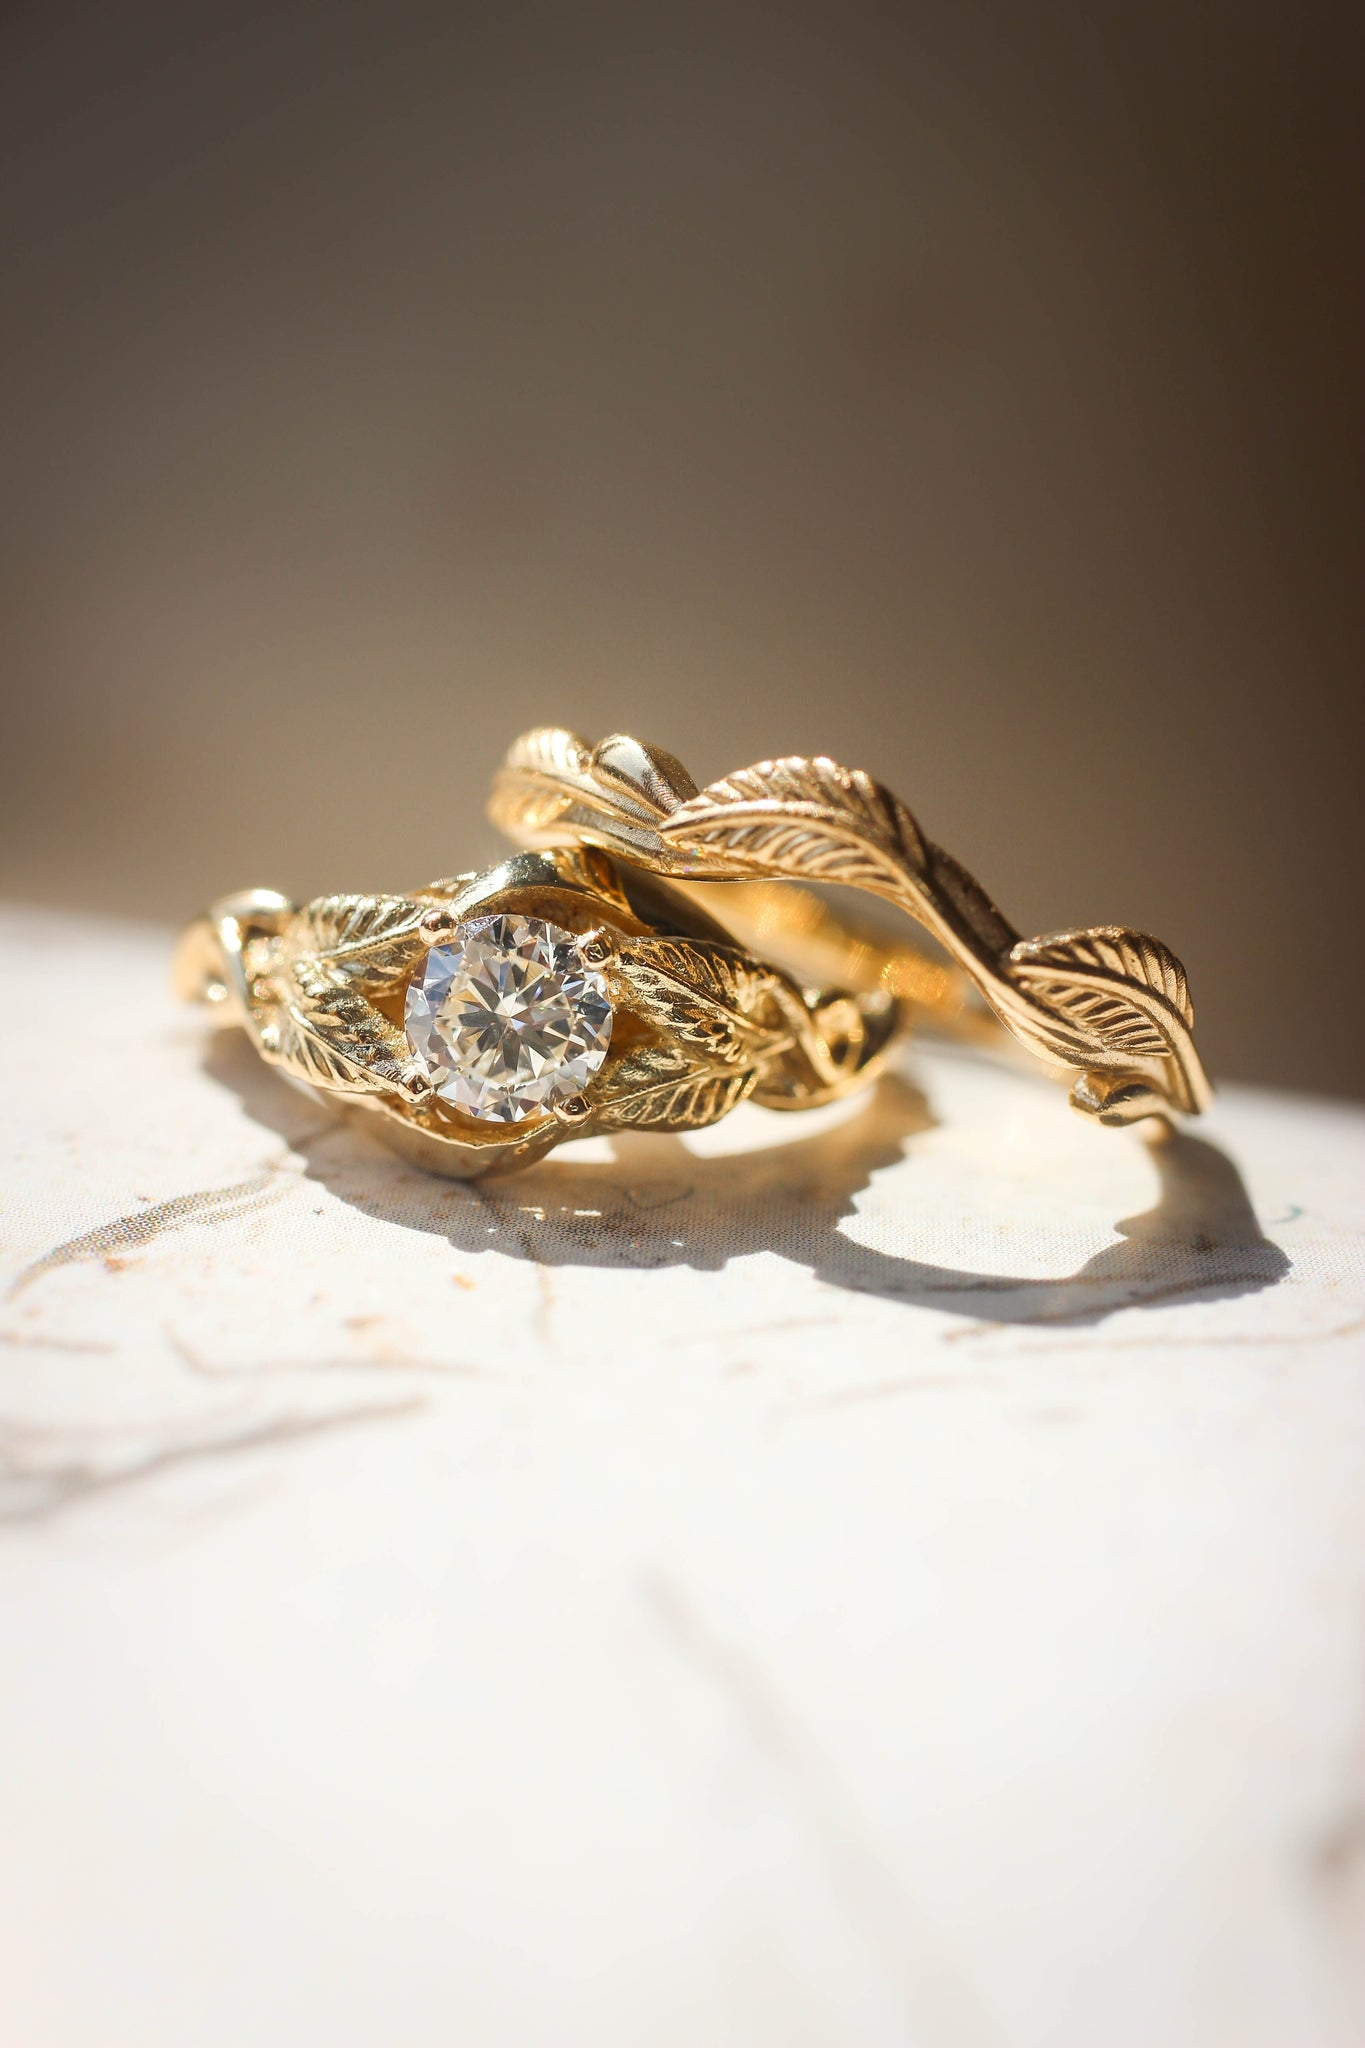 Bridal ring set, moissanite or diamond ring with twig band / Azalea - Eden Garden Jewelry